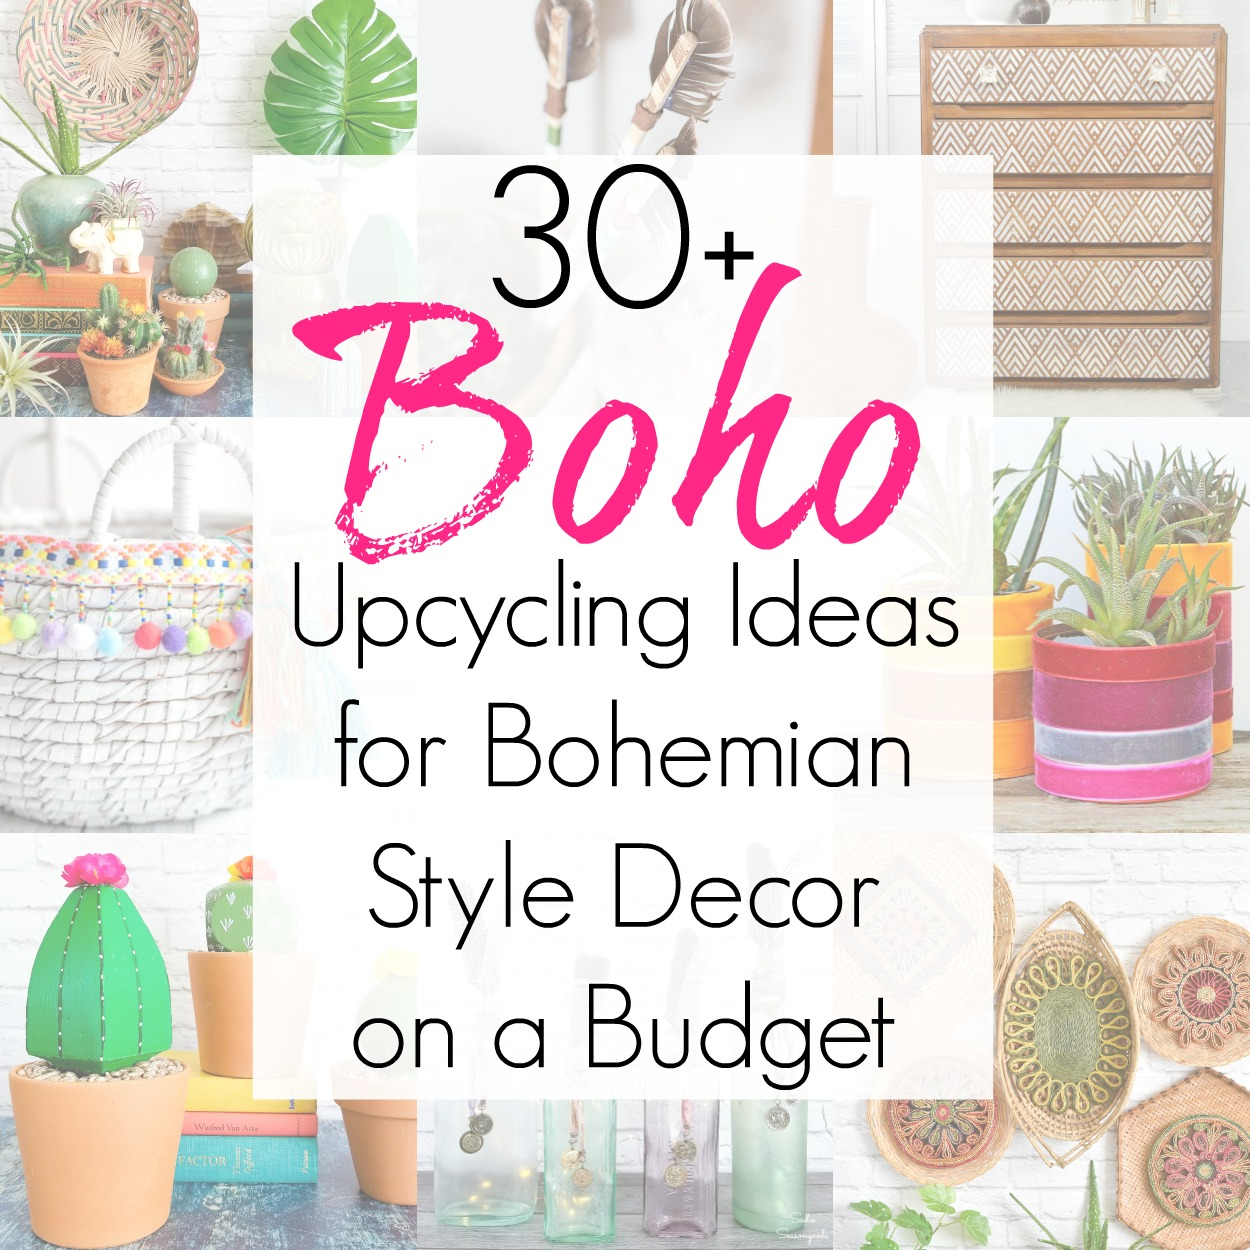 Bohemian style decor and upcycling projects for boho decor on a budget